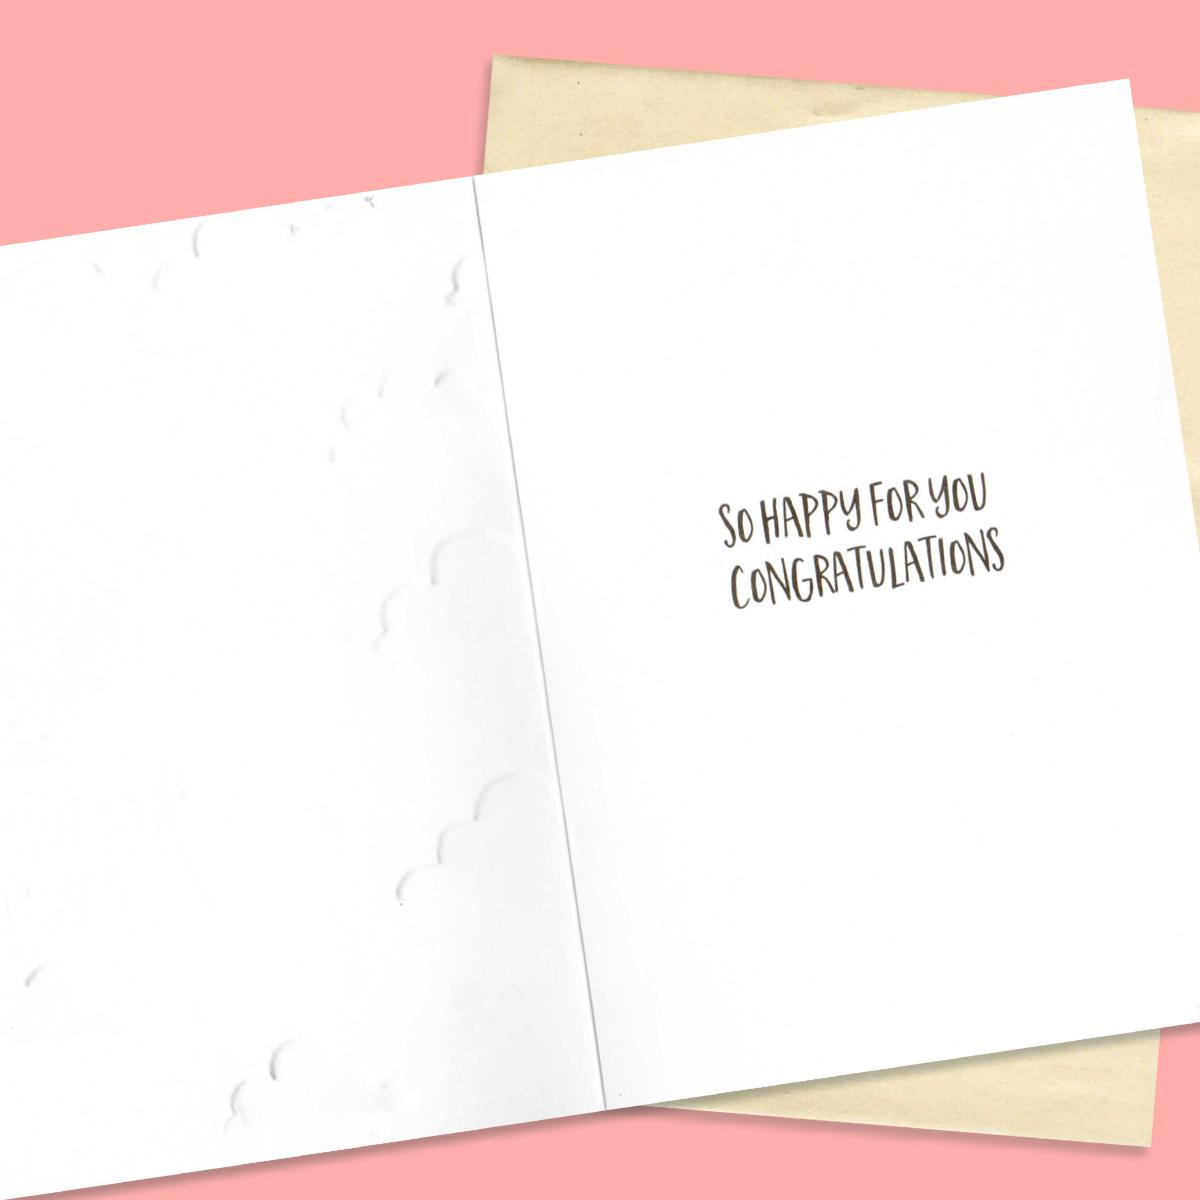 Inside Of Baby Girl Card Showing Printed Text